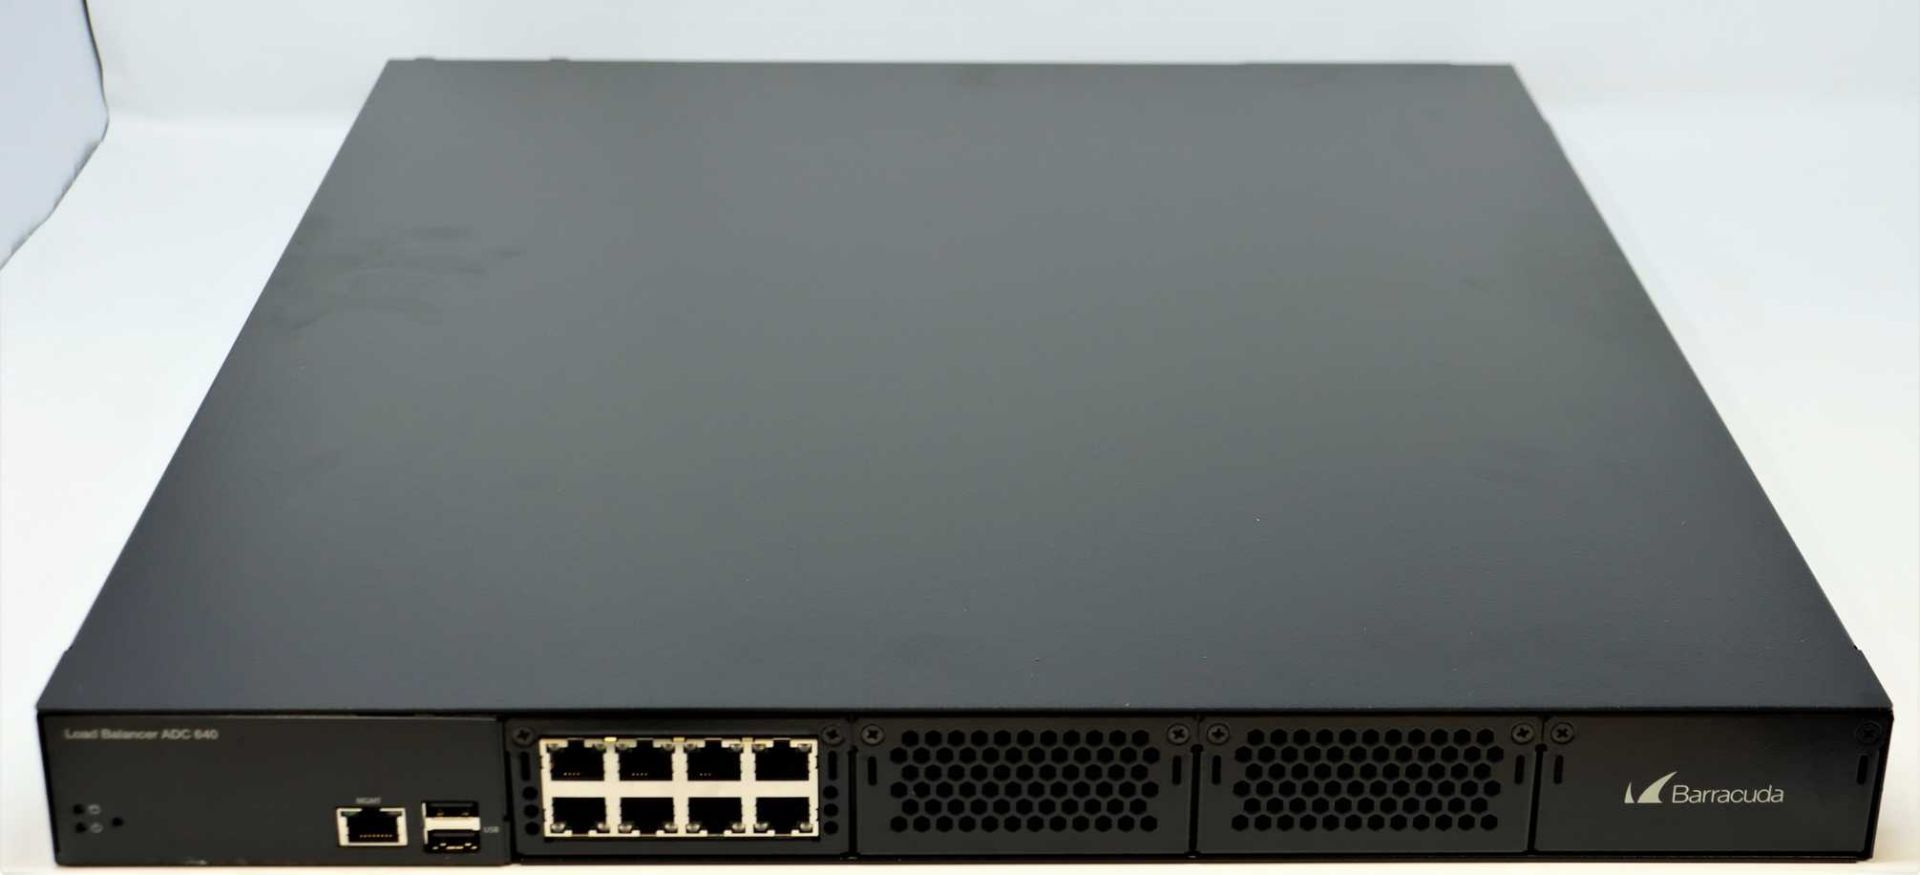 A boxed as new Barracuda Load Balancer ADC 640 (BBF640B BAR-BF-139349) (Rails, cables and manual - Image 2 of 18